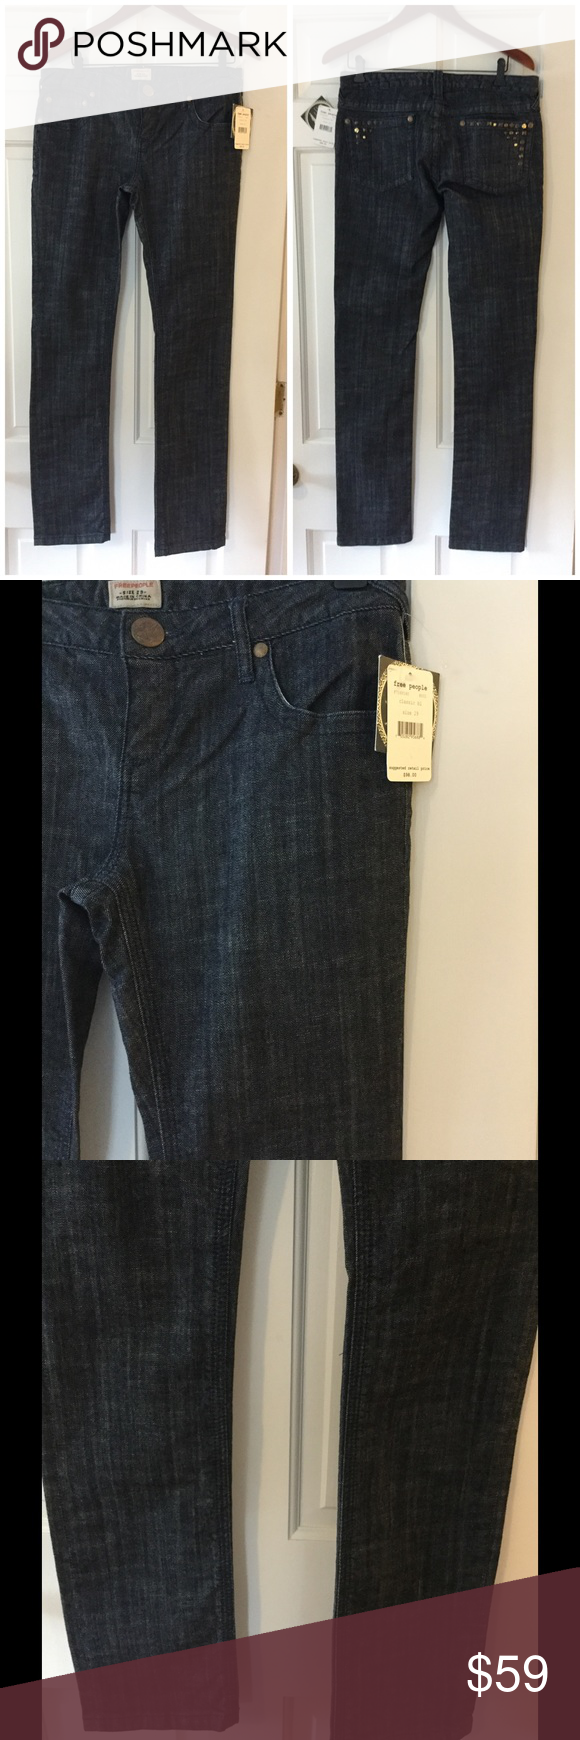 """Free People classic black jeans These fabulous Free People jeans are 98% cotton and 2% spandex. Machine wash and dry. Waist 16"""" across. Front rise 8.5"""". Inseam 34"""", Brand new with tag. Retail price $98. Free People Jeans Straight Leg"""